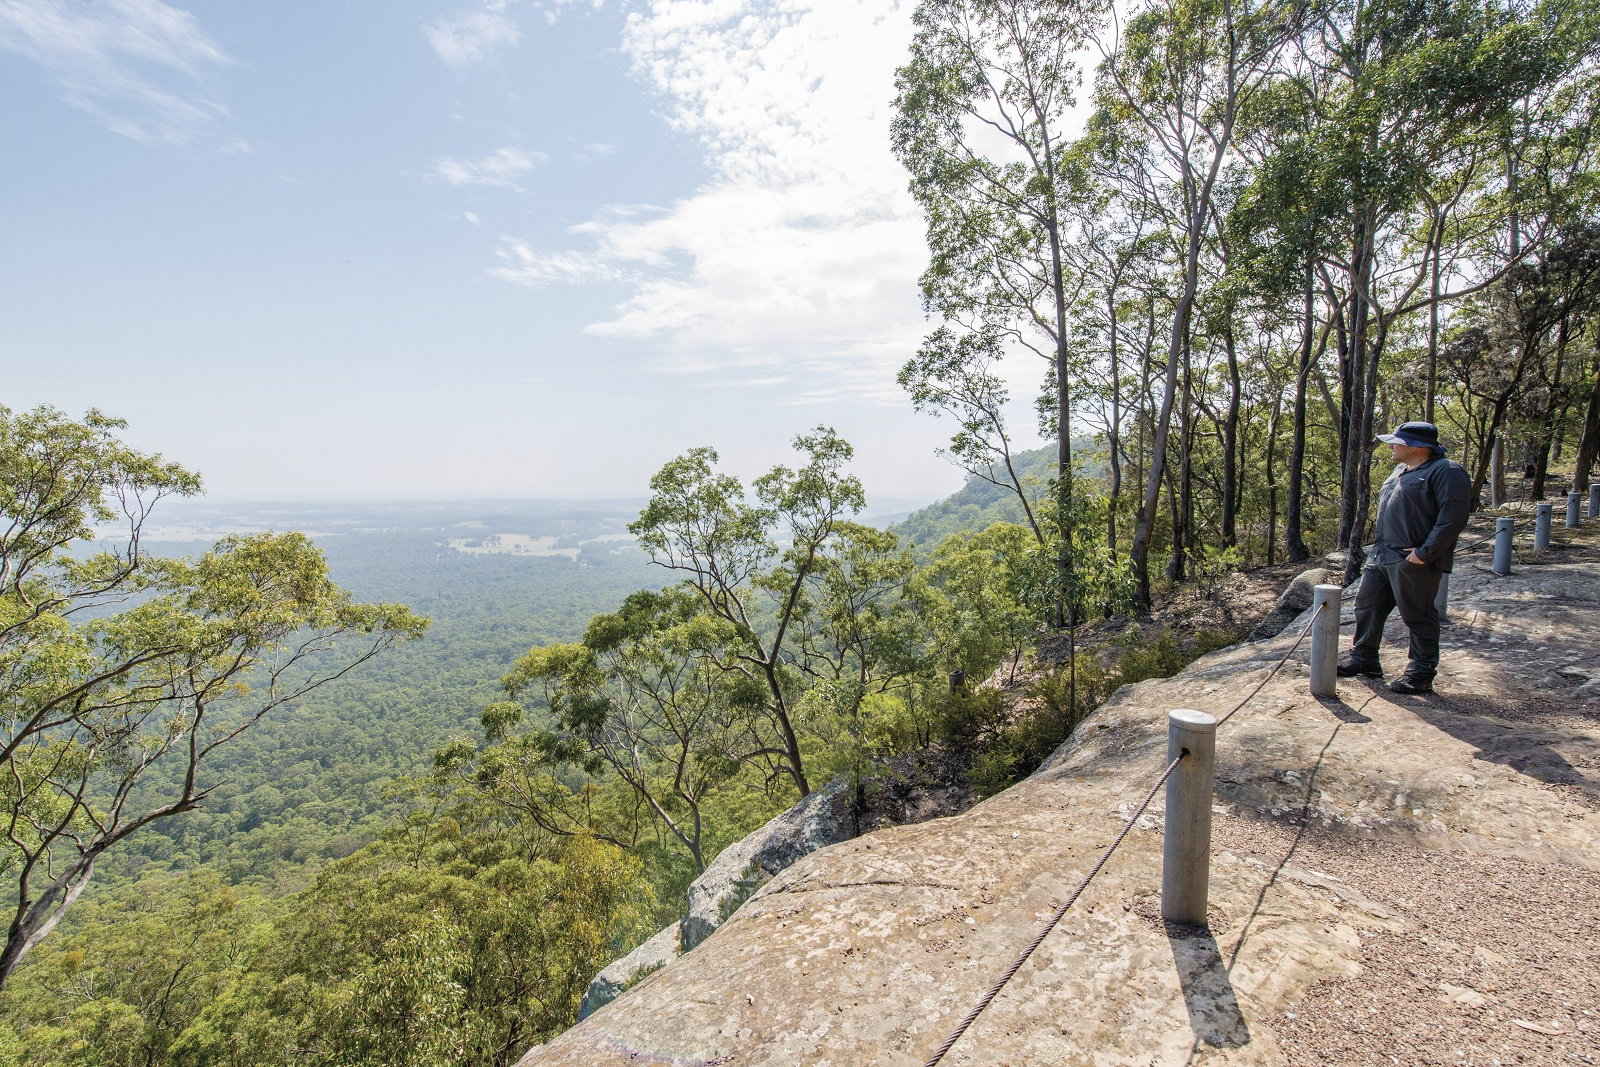 The Narrow Place lookout in Watagans National Park. Photo: John Spencer/DPIE